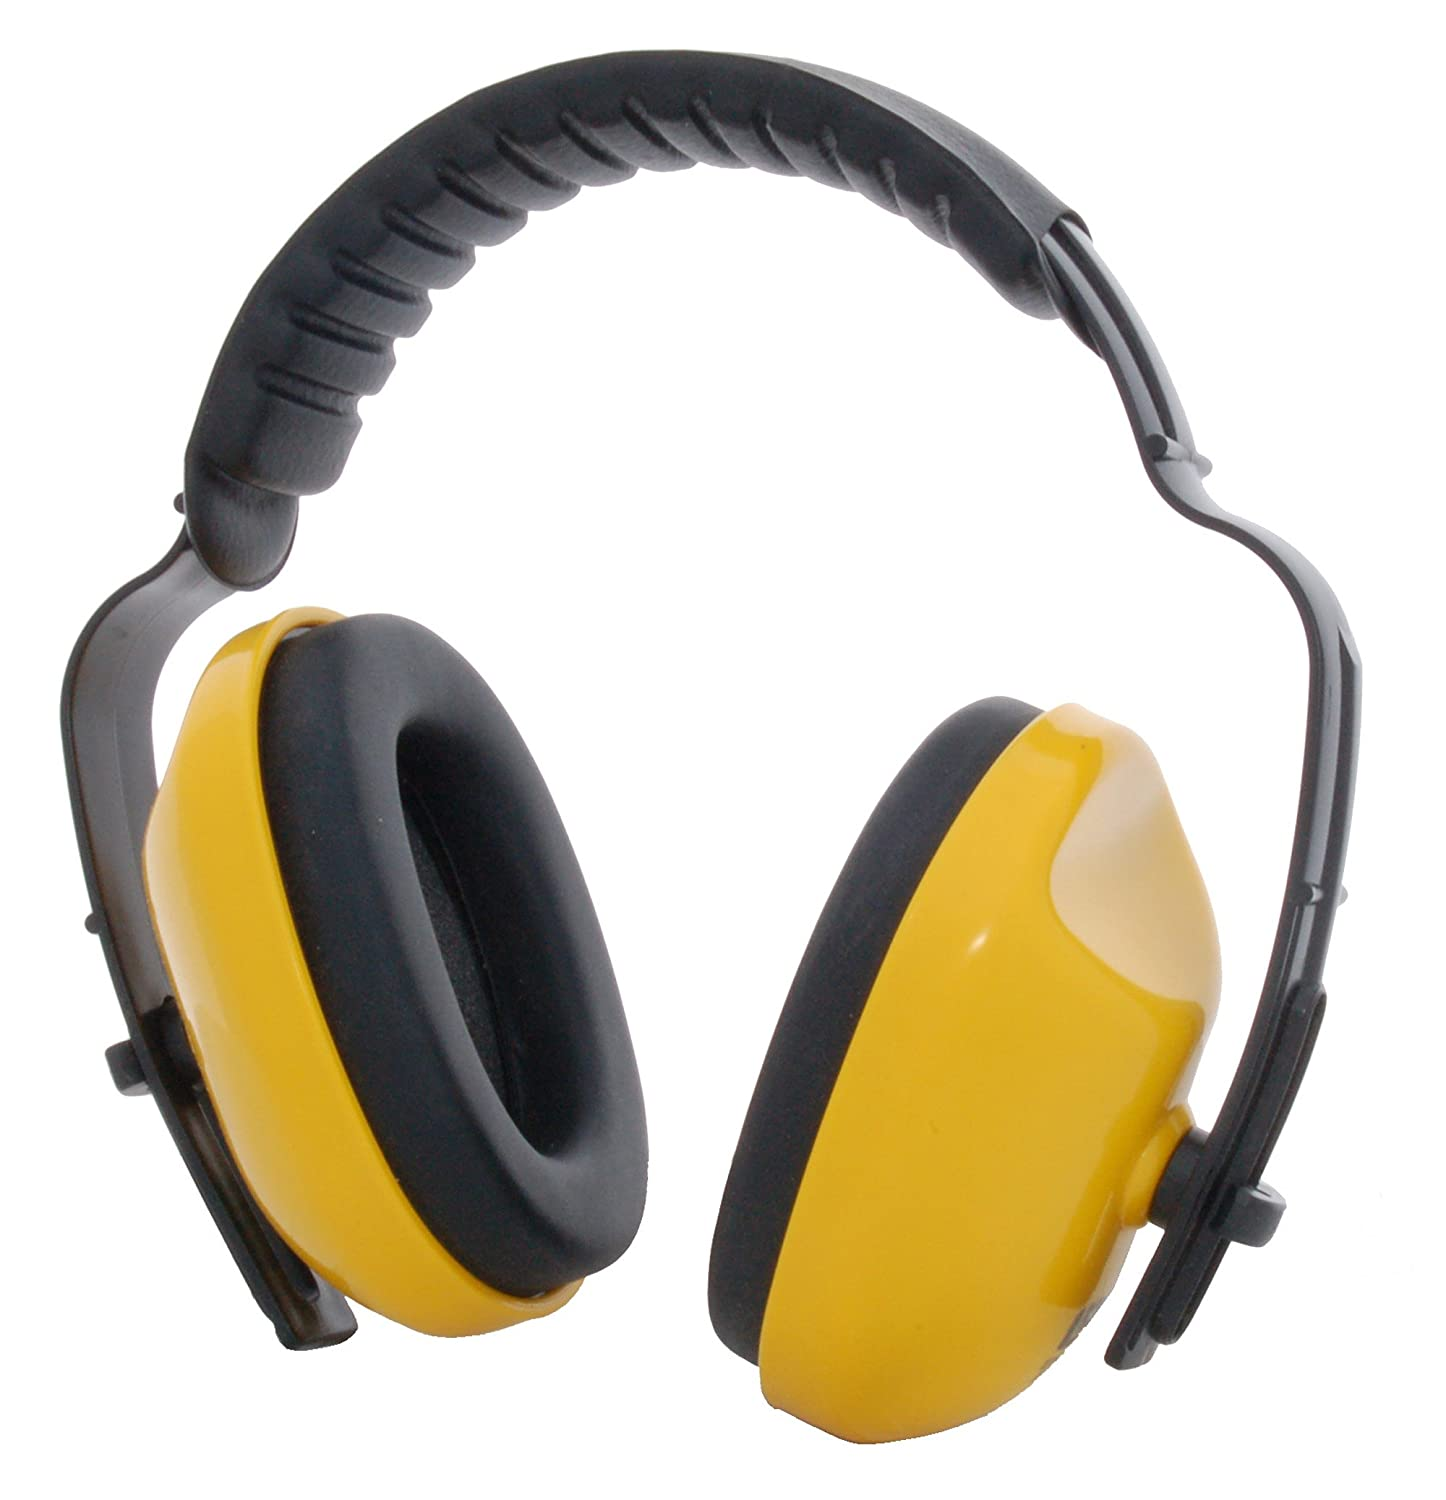 Zenport EM106 Adjustable Headband Ear Muffs Yellow Black   B00A8YW9W0